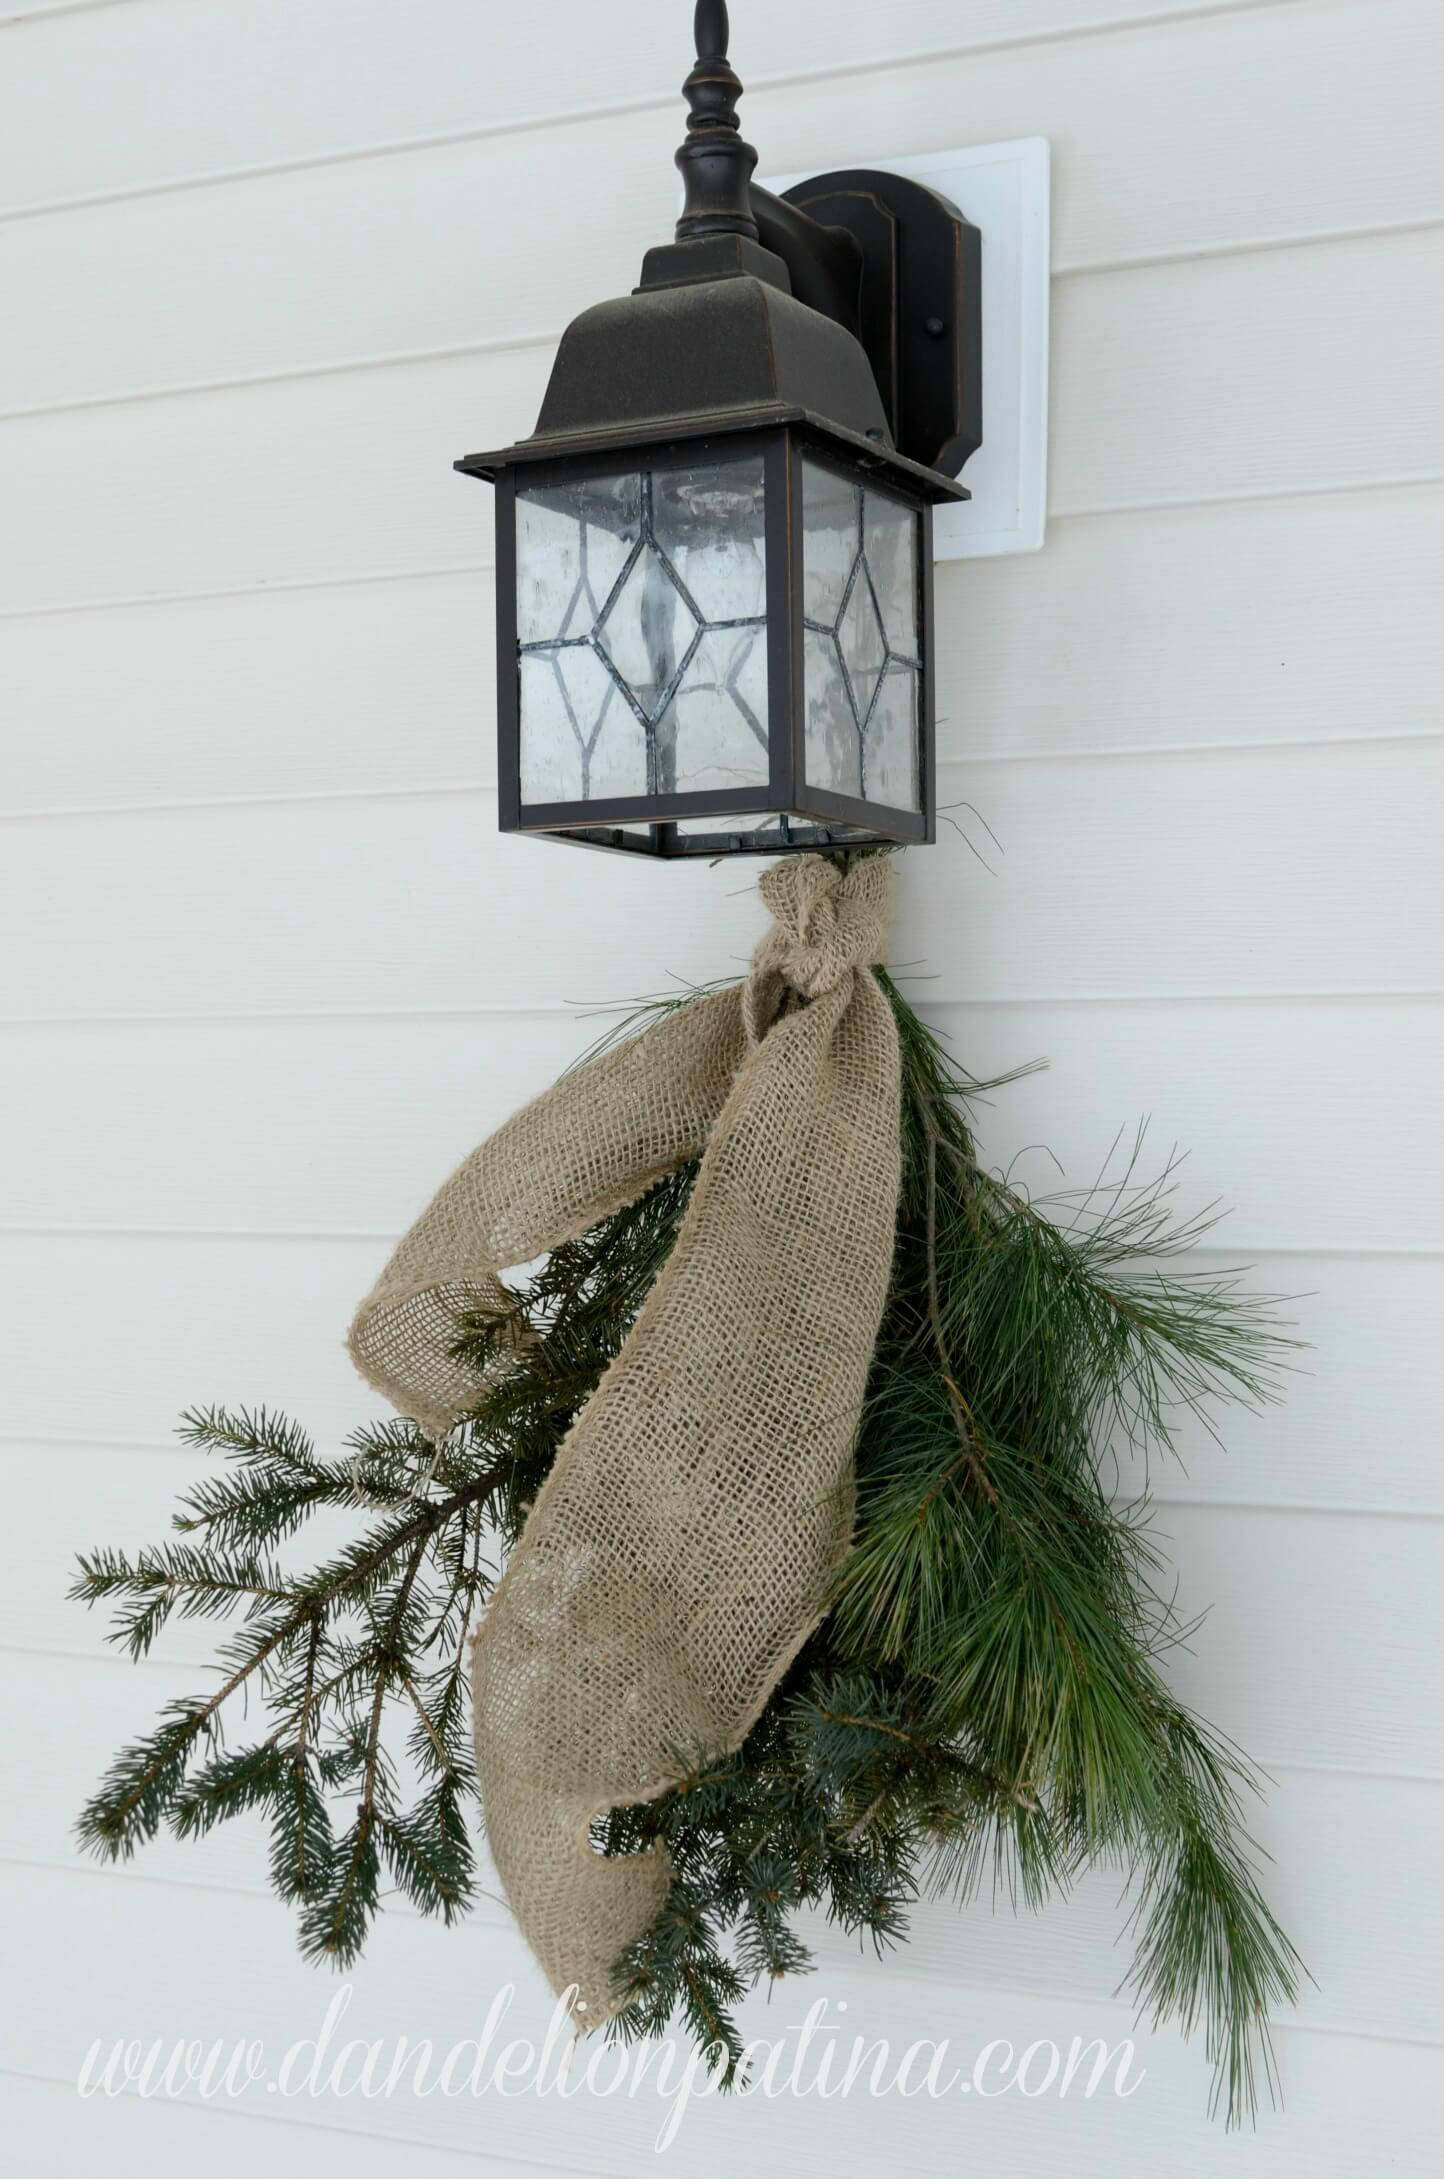 Burlap Pine Swags for Outdoor Lighting Fixture